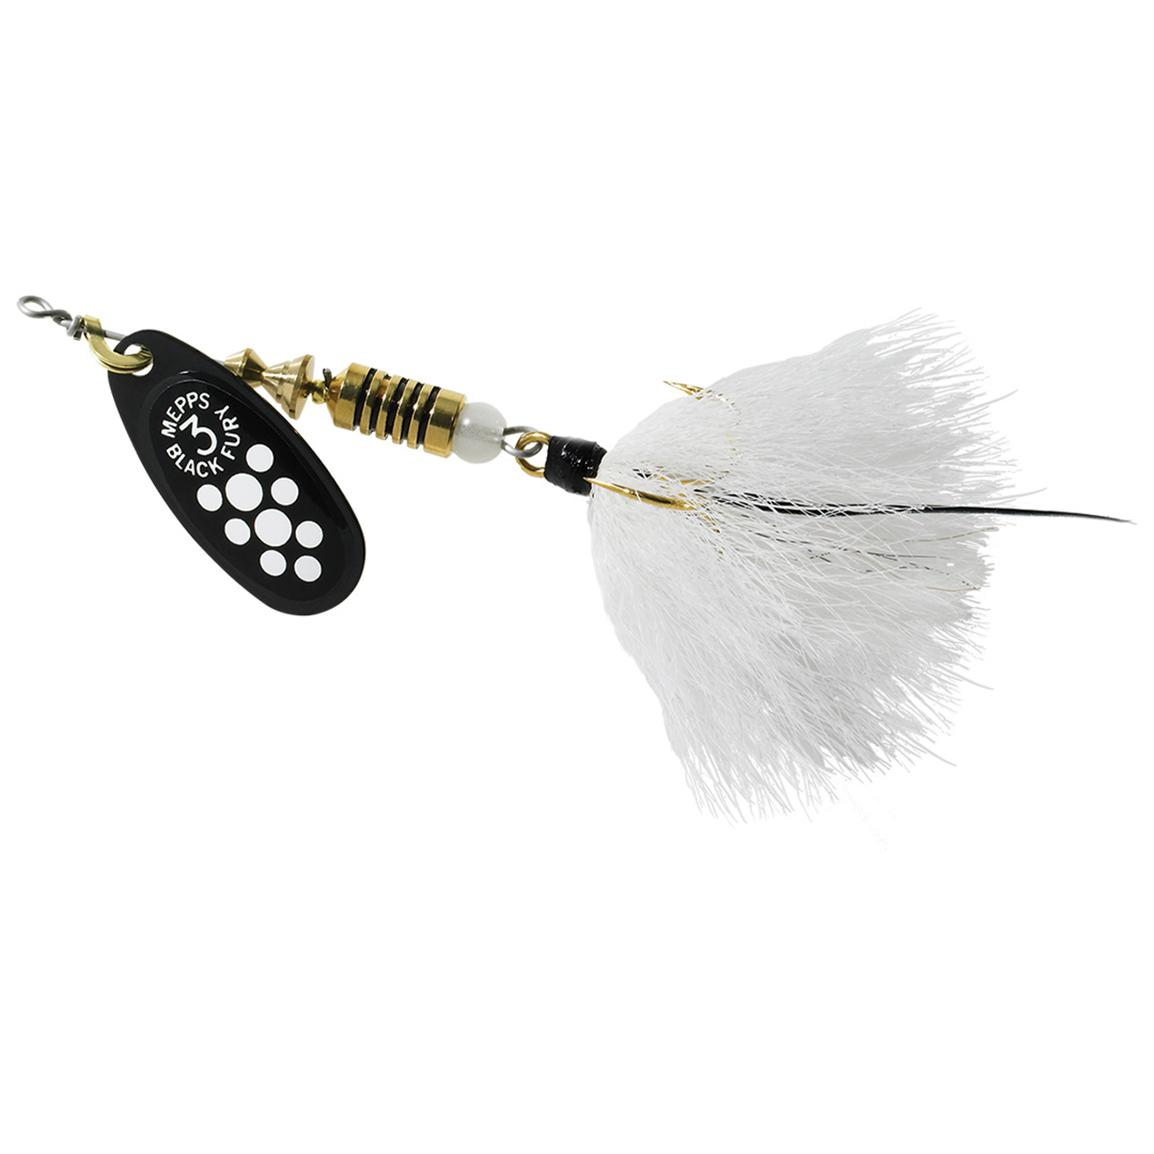 Mepps® Black Fury® Dressed Spinnerbait, White Dot Blade-White Tail